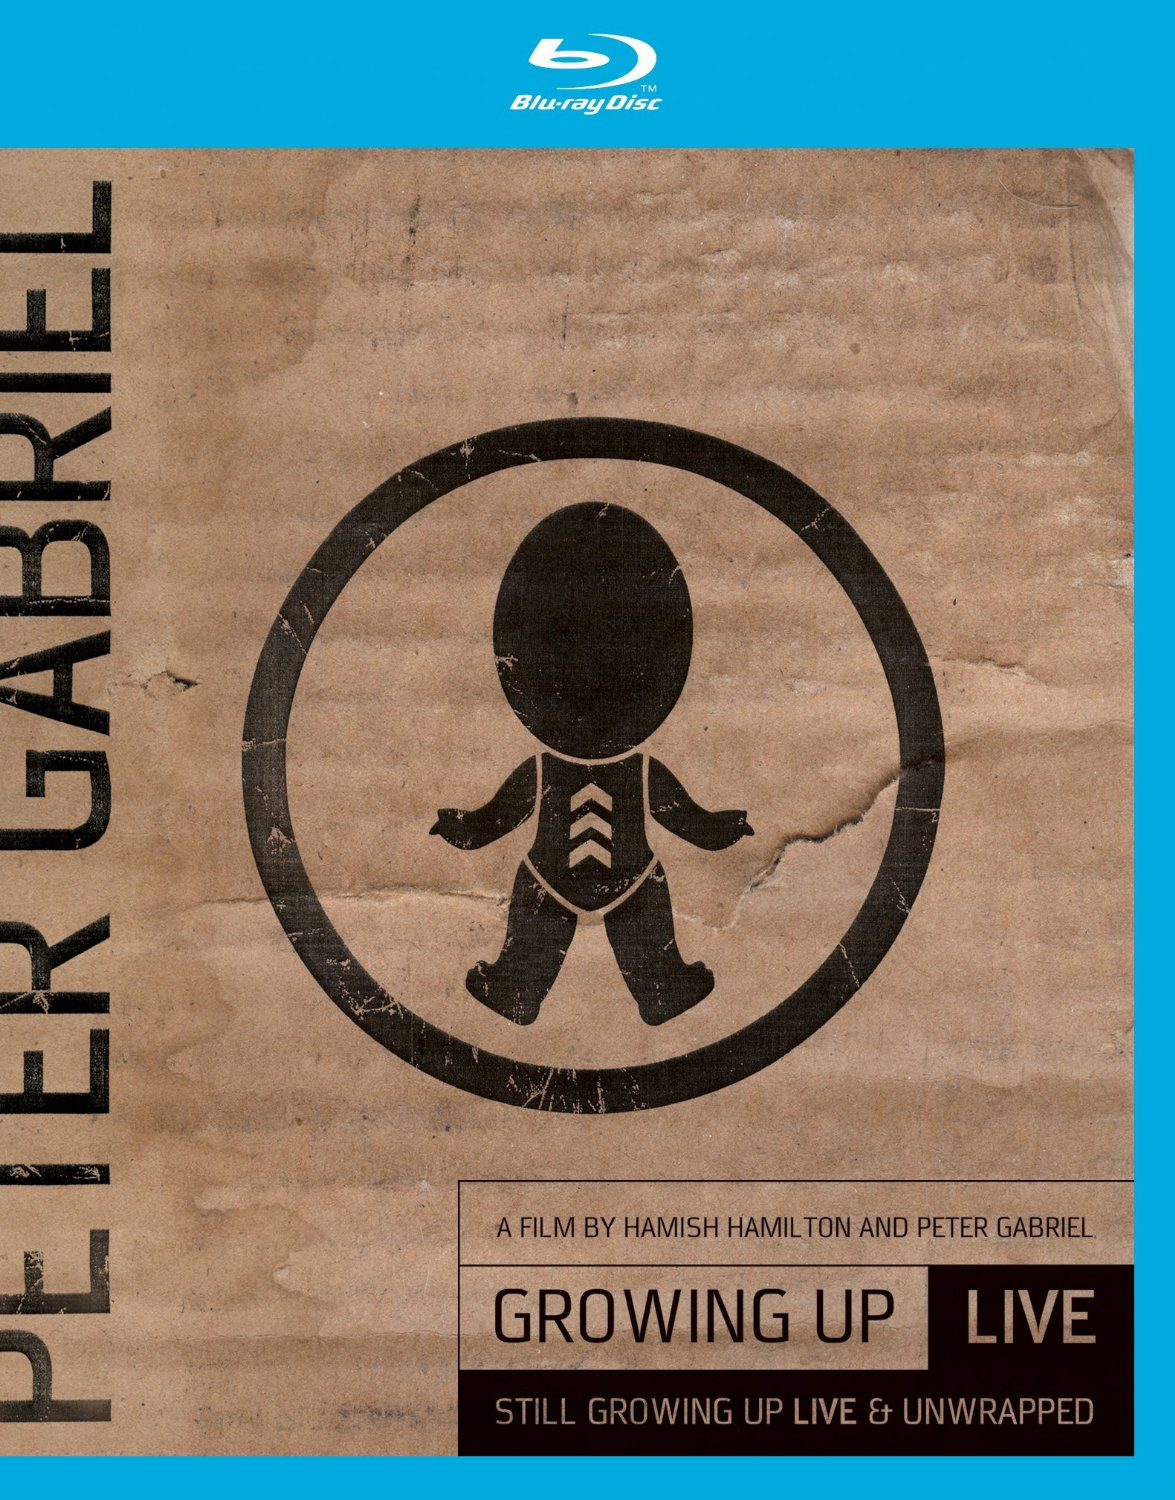 Peter Gabriel / Growing Up: Live blu-ray+DVD